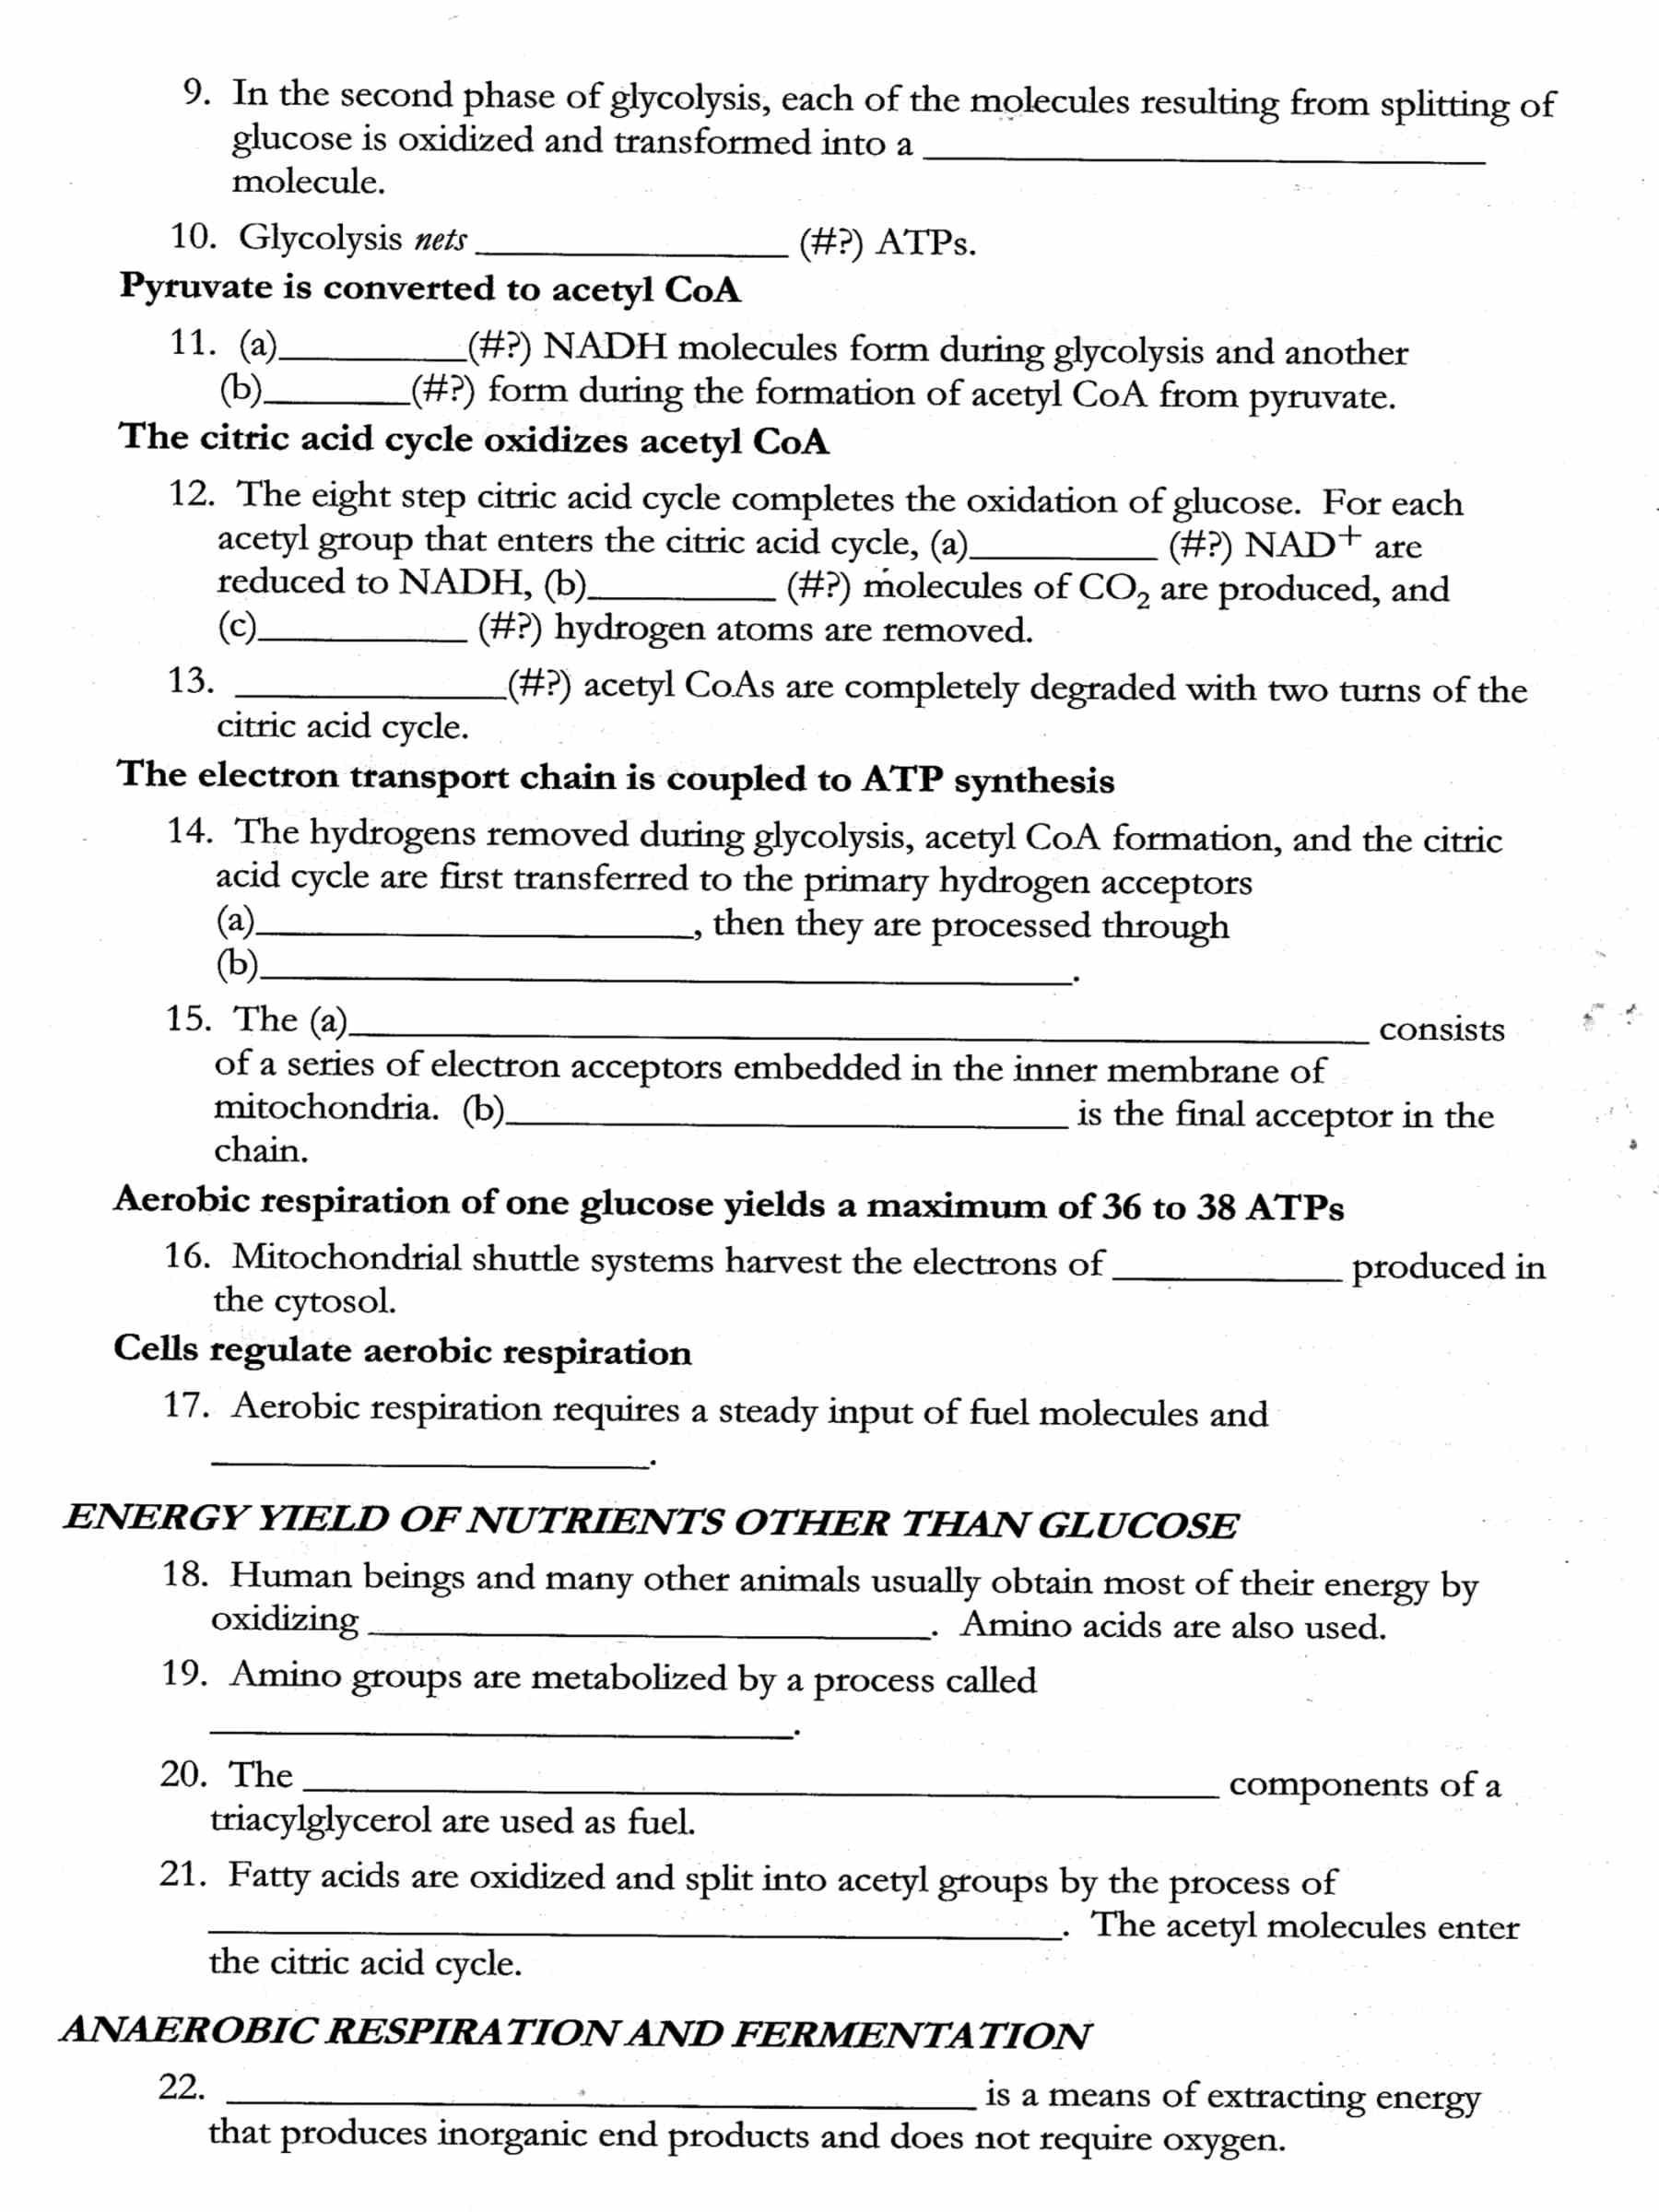 Worksheets Cellular Respiration Worksheet cellular respiration 2 jpg hcc learning web jpg